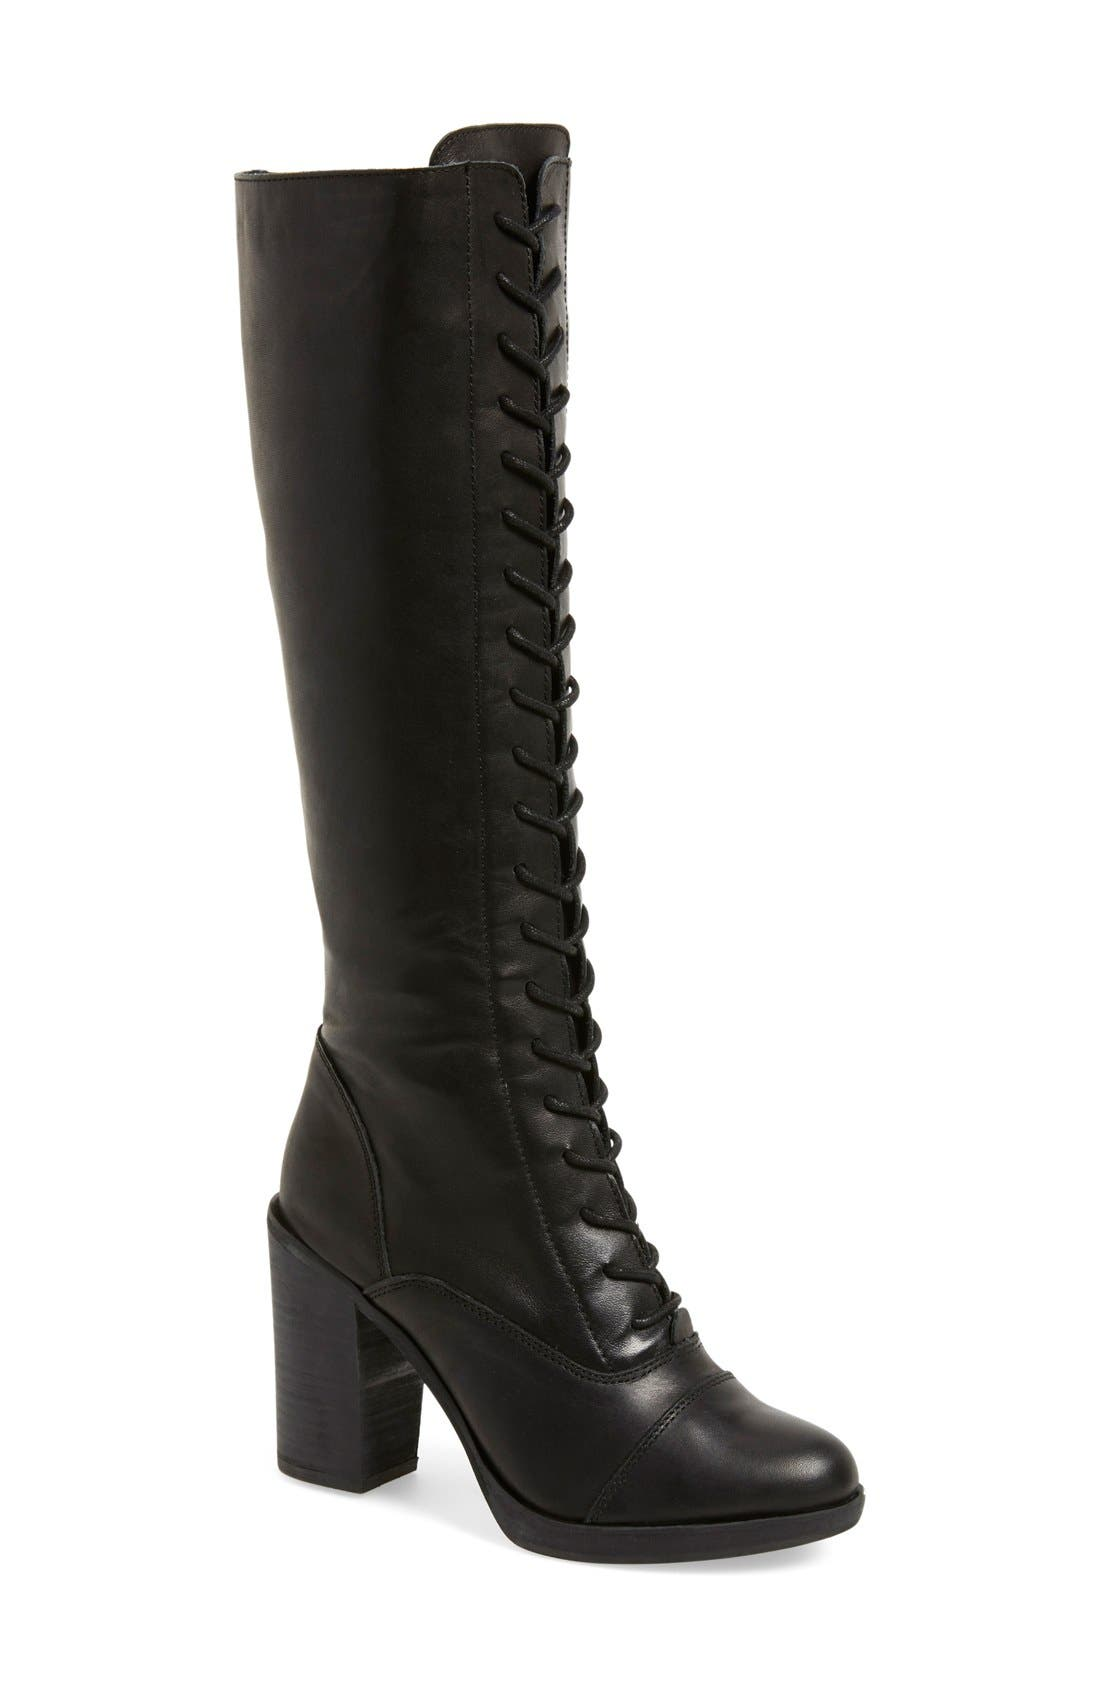 Alternate Image 1 Selected - Steve Madden 'Nidea' Lace-Up Knee High Boot (Women)